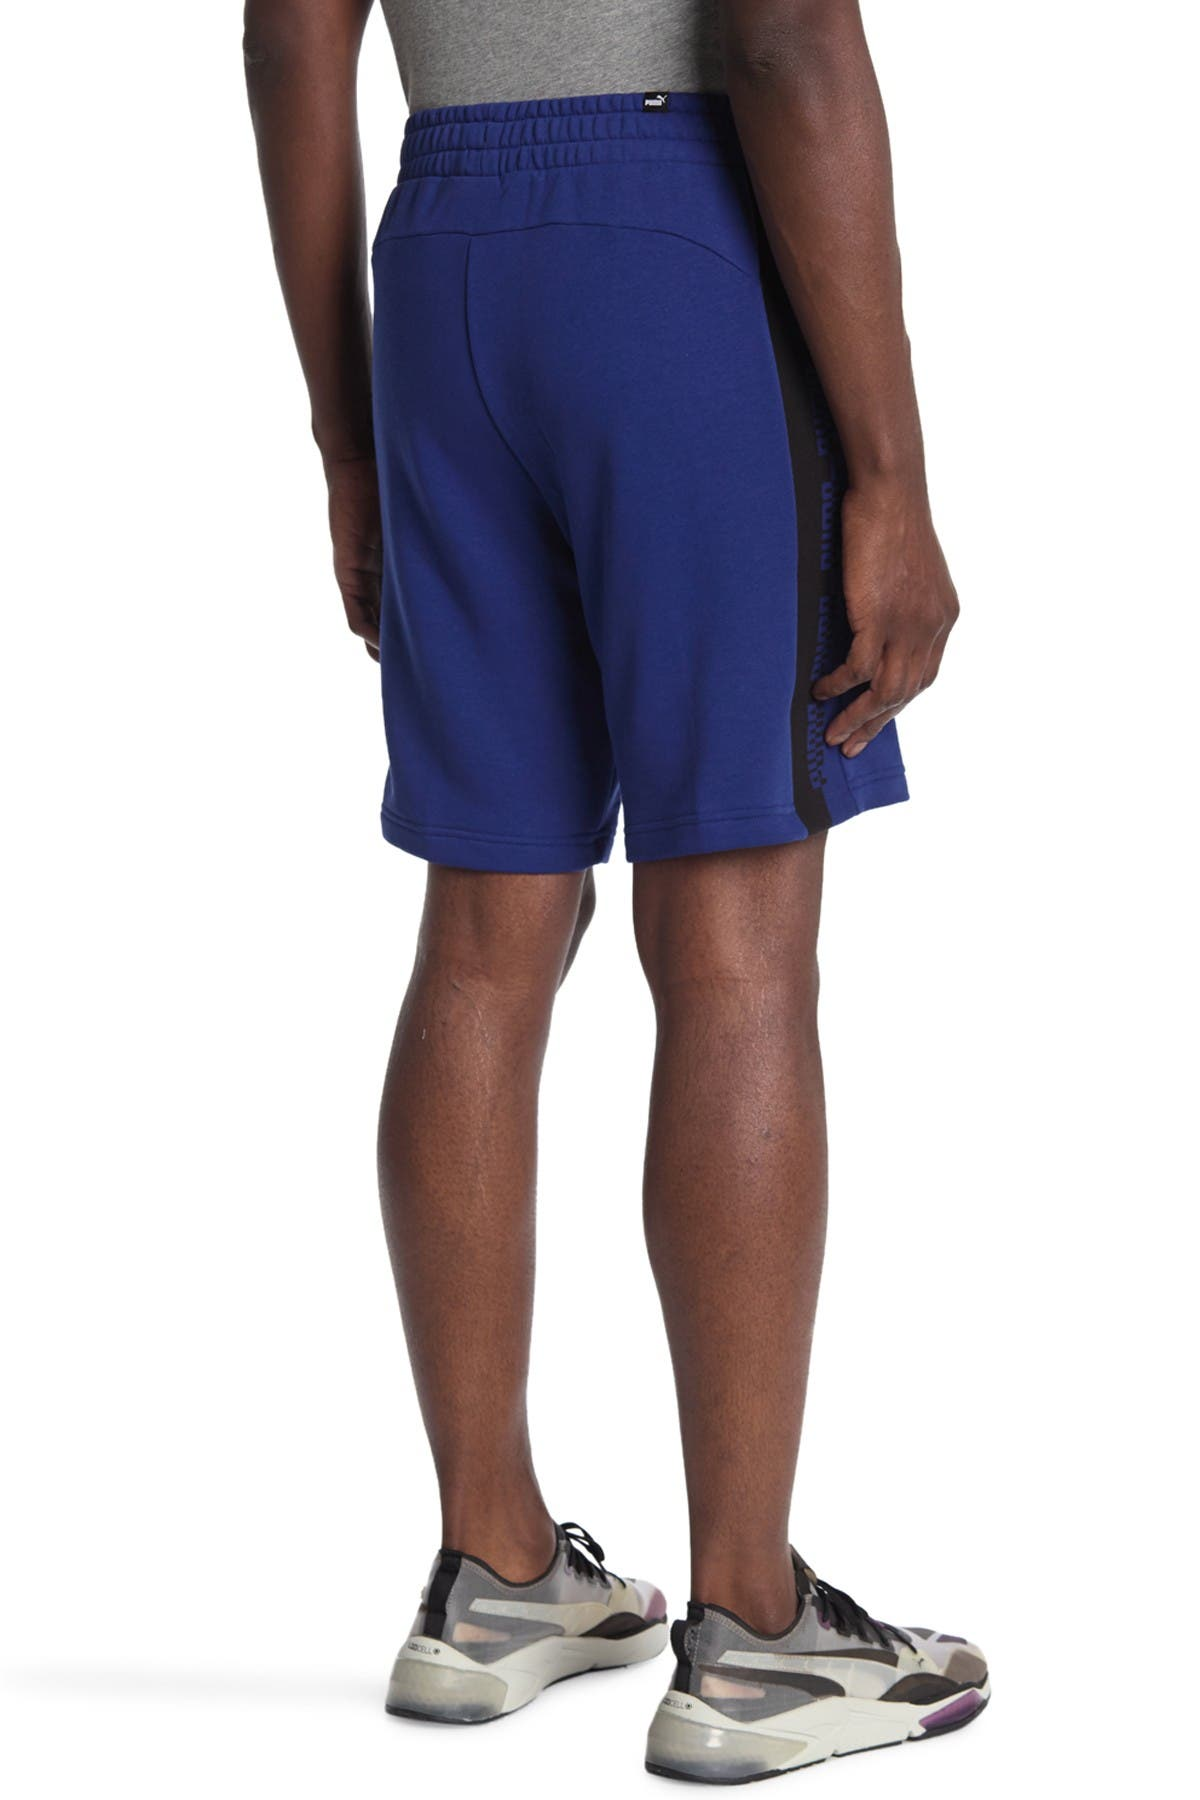 Image of PUMA Amplified Shorts 9""